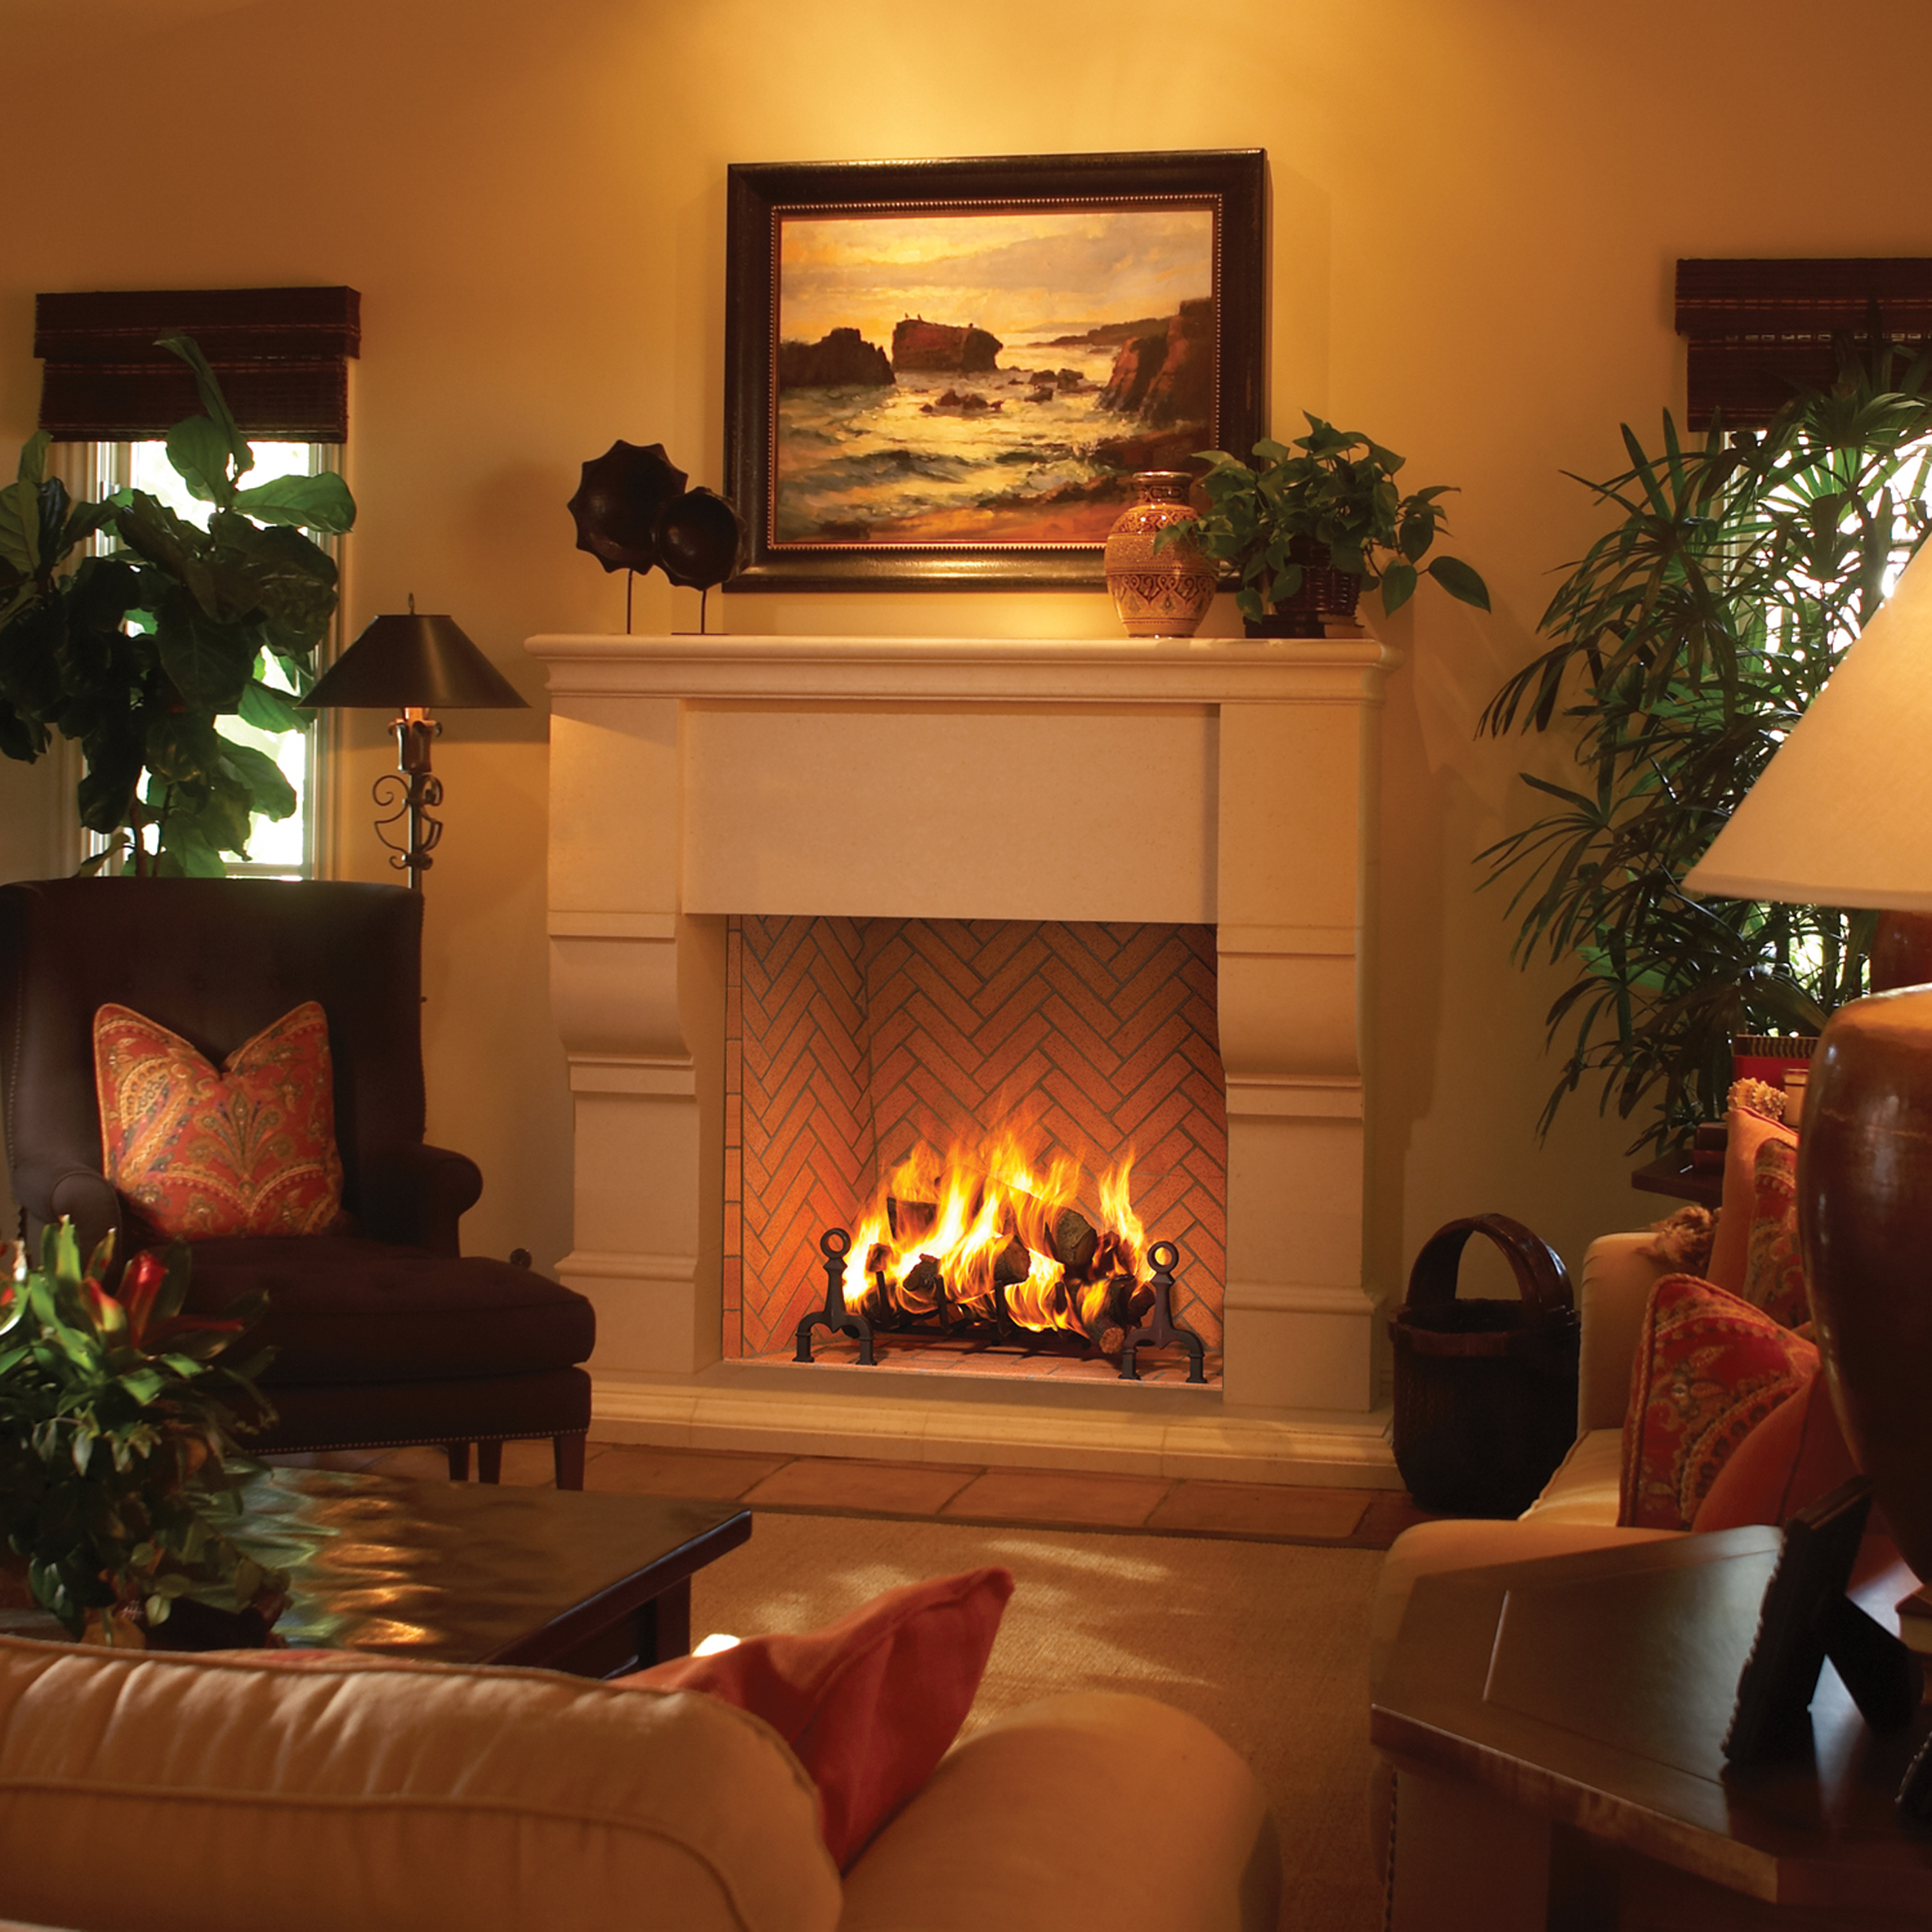 Incredible Fireplaces Okc | Surprising Fmi Fireplaces